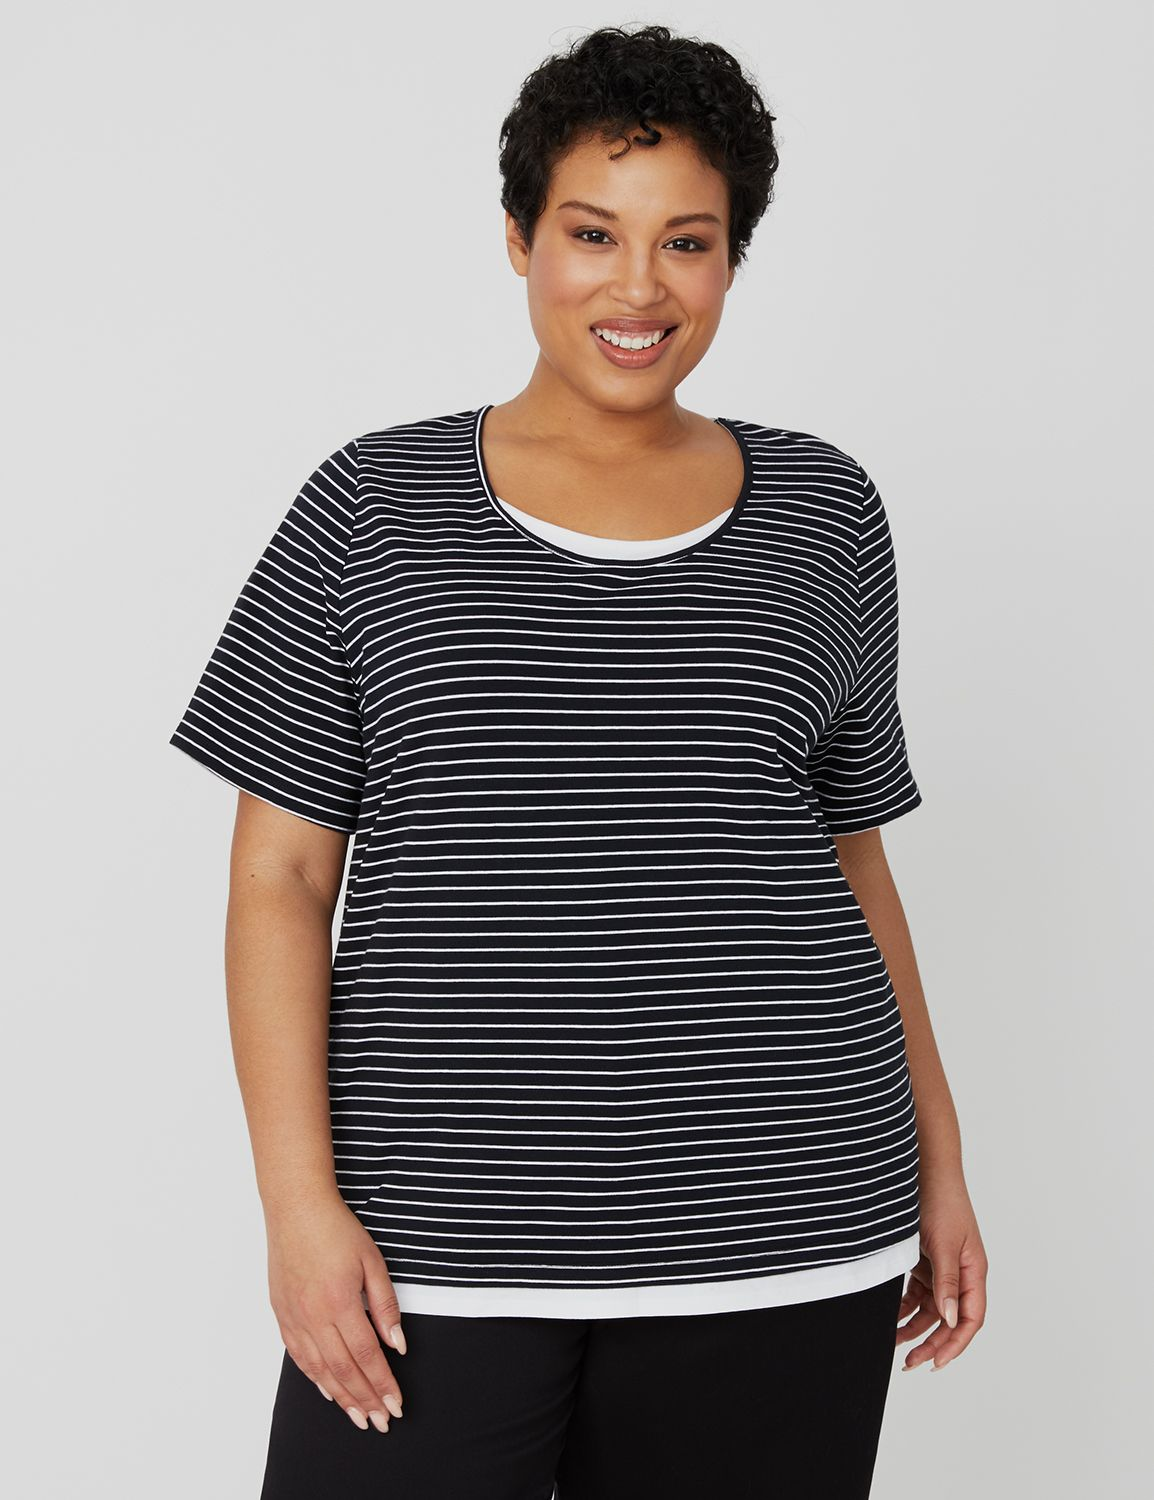 Suprema Duet Stripe Tee 1092768 SUPREMA SS- STRIPE 2FOR MP-300104383